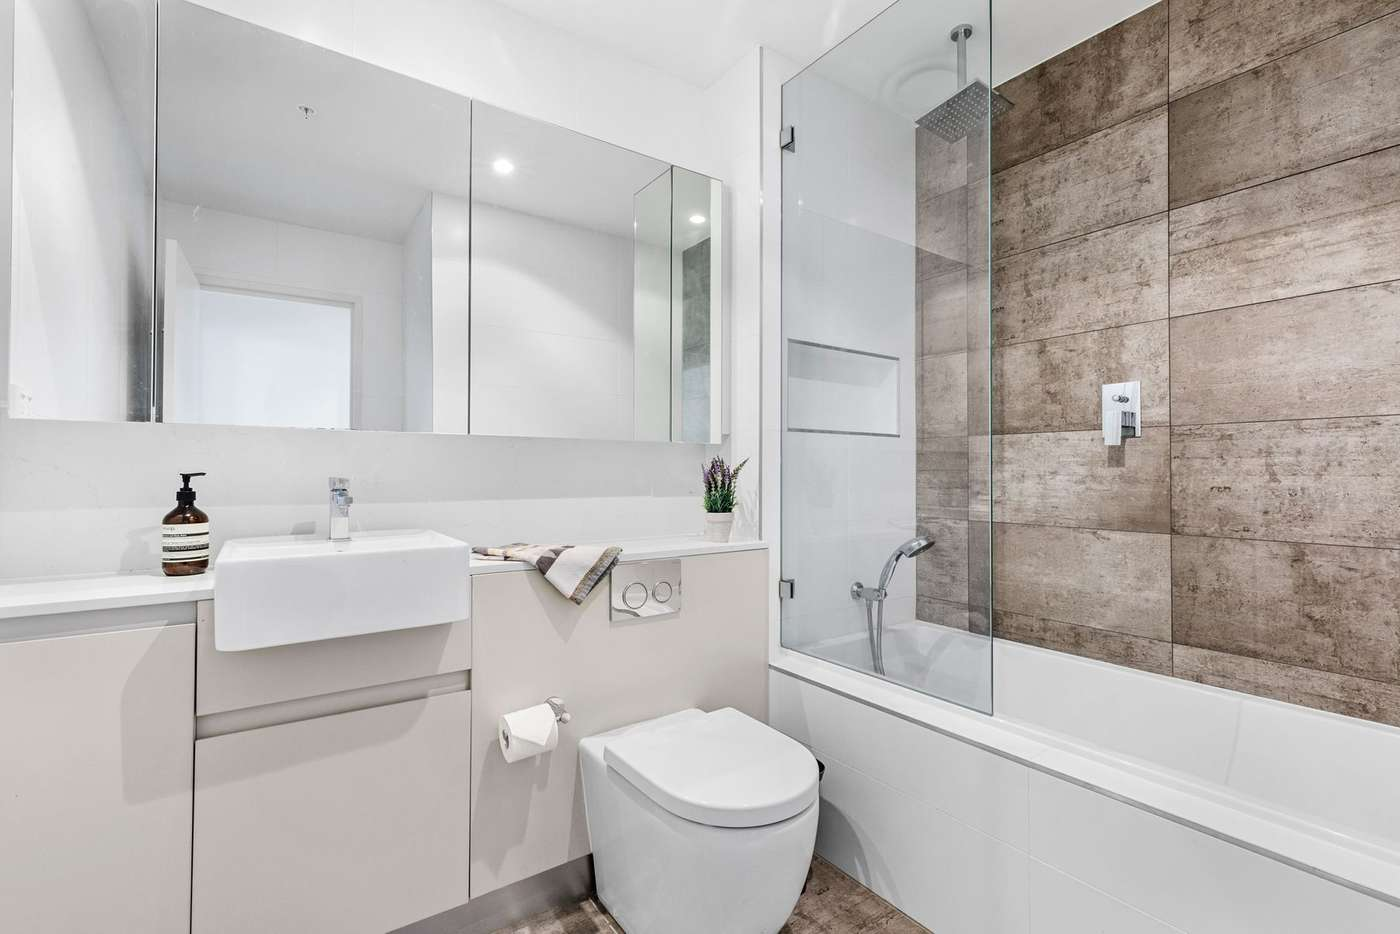 Fifth view of Homely apartment listing, 502/25 Lindfield Avenue, Lindfield NSW 2070